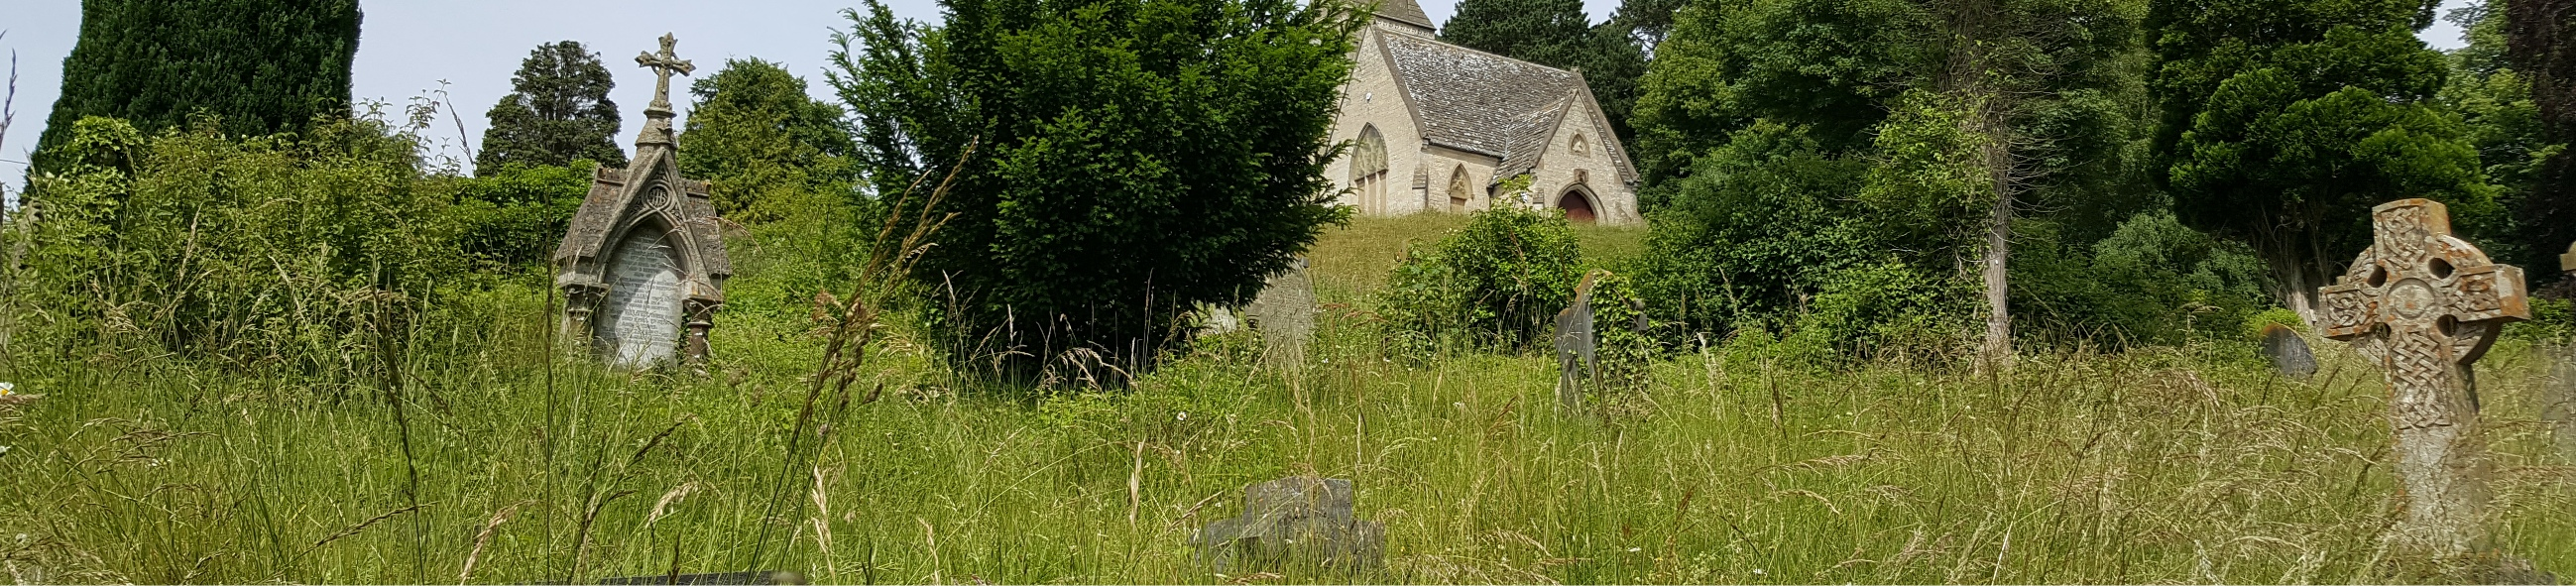 Long grass and lichen-covered gravestones at Bisley Rd Old Cemetery